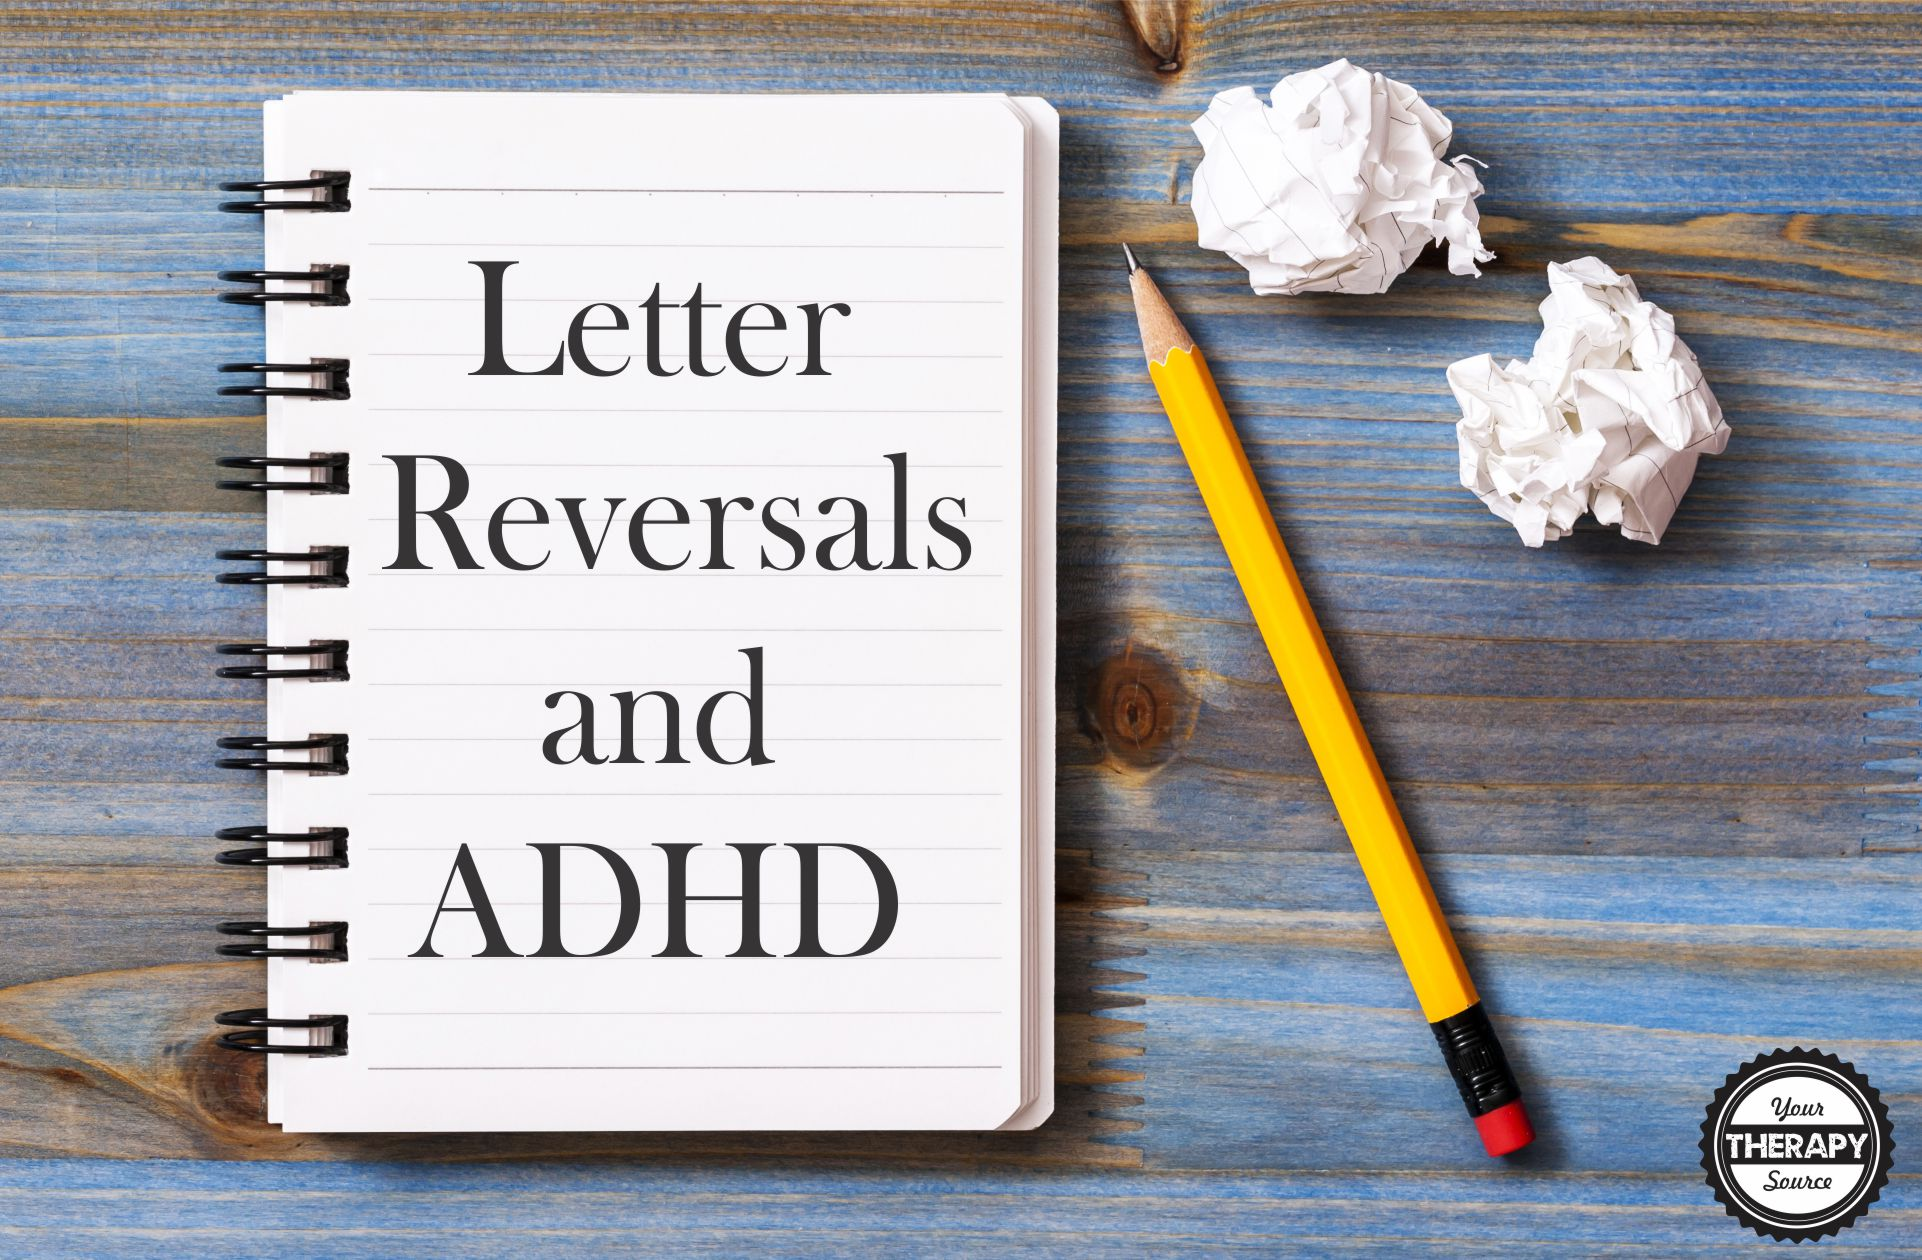 Letter Reversals and ADHD